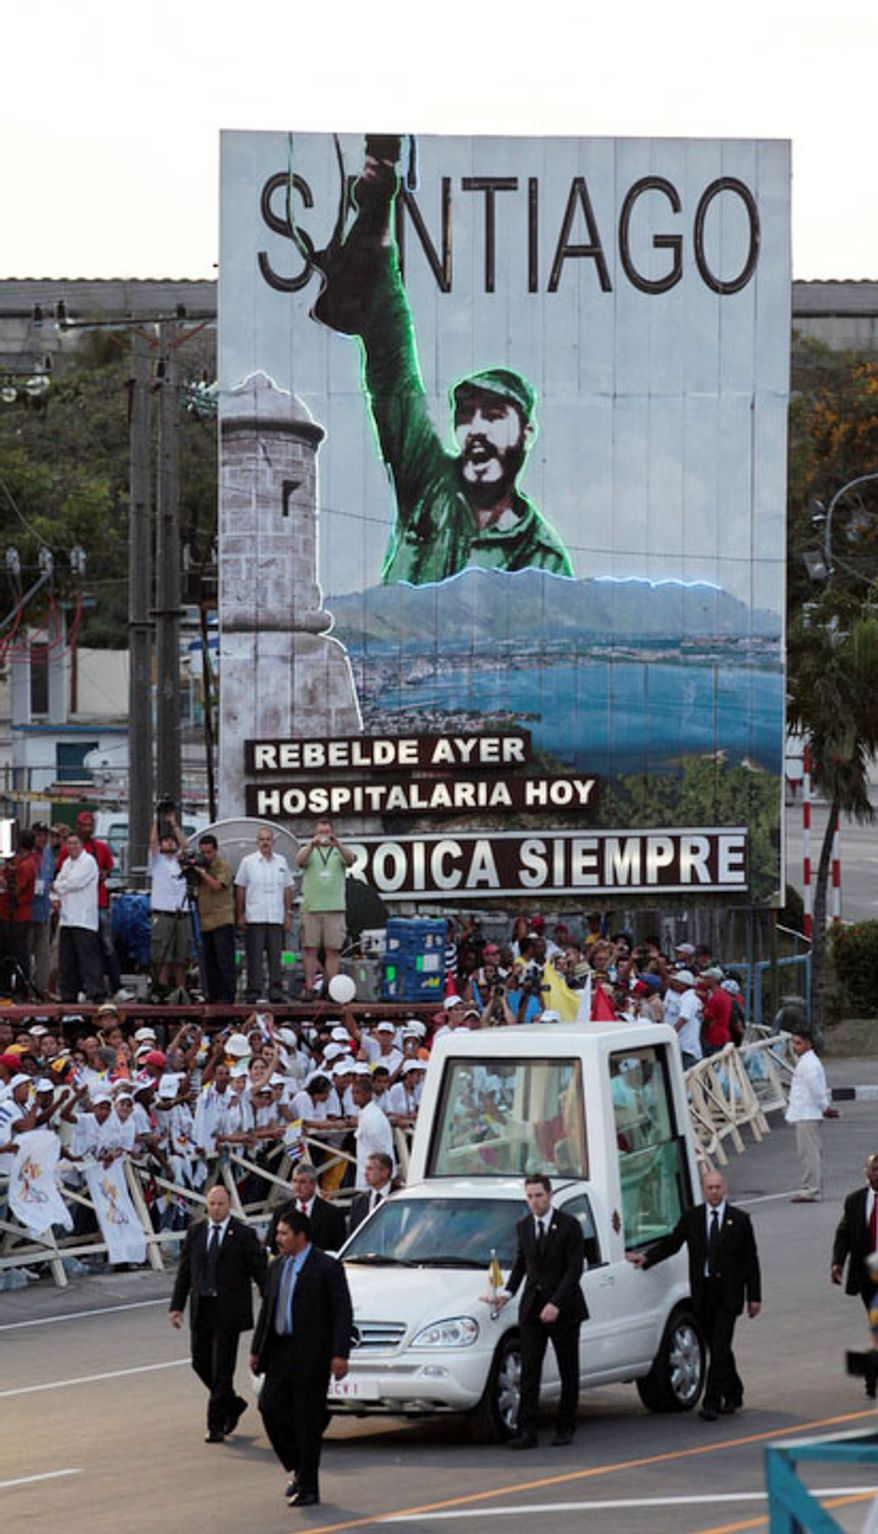 With a billboard showing Cuba's leader Fidel Castro in the background, Pope Benedict XVI arrives aboard the popemobile in Revolution Square to celebrate a Mass in Santiago de Cuba, Cuba, on March 26, 2012. The pope is in Cuba for a three-day visit. (Associated Press)